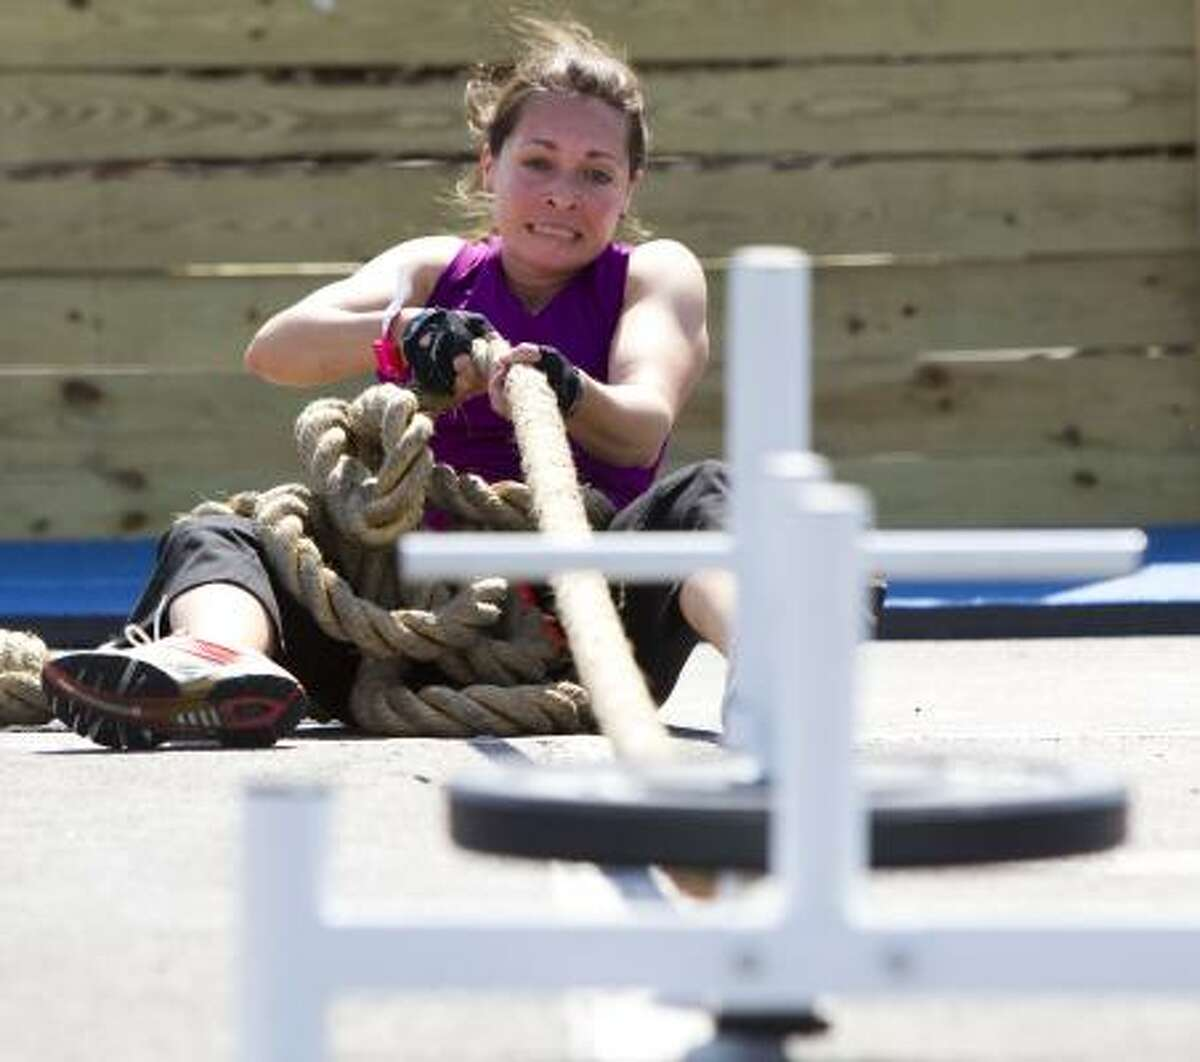 Sasha Kuklis pulls a weighted sled during the Metro Dash race at Reliant Park Saturday, in Houston. More than 1,100 people participated in an intense obstacle course, set up in an area the size of a football field, comprised of 30 obstacles that had participants climbing, crawling, jumping, swinging and scaling their way through the race.